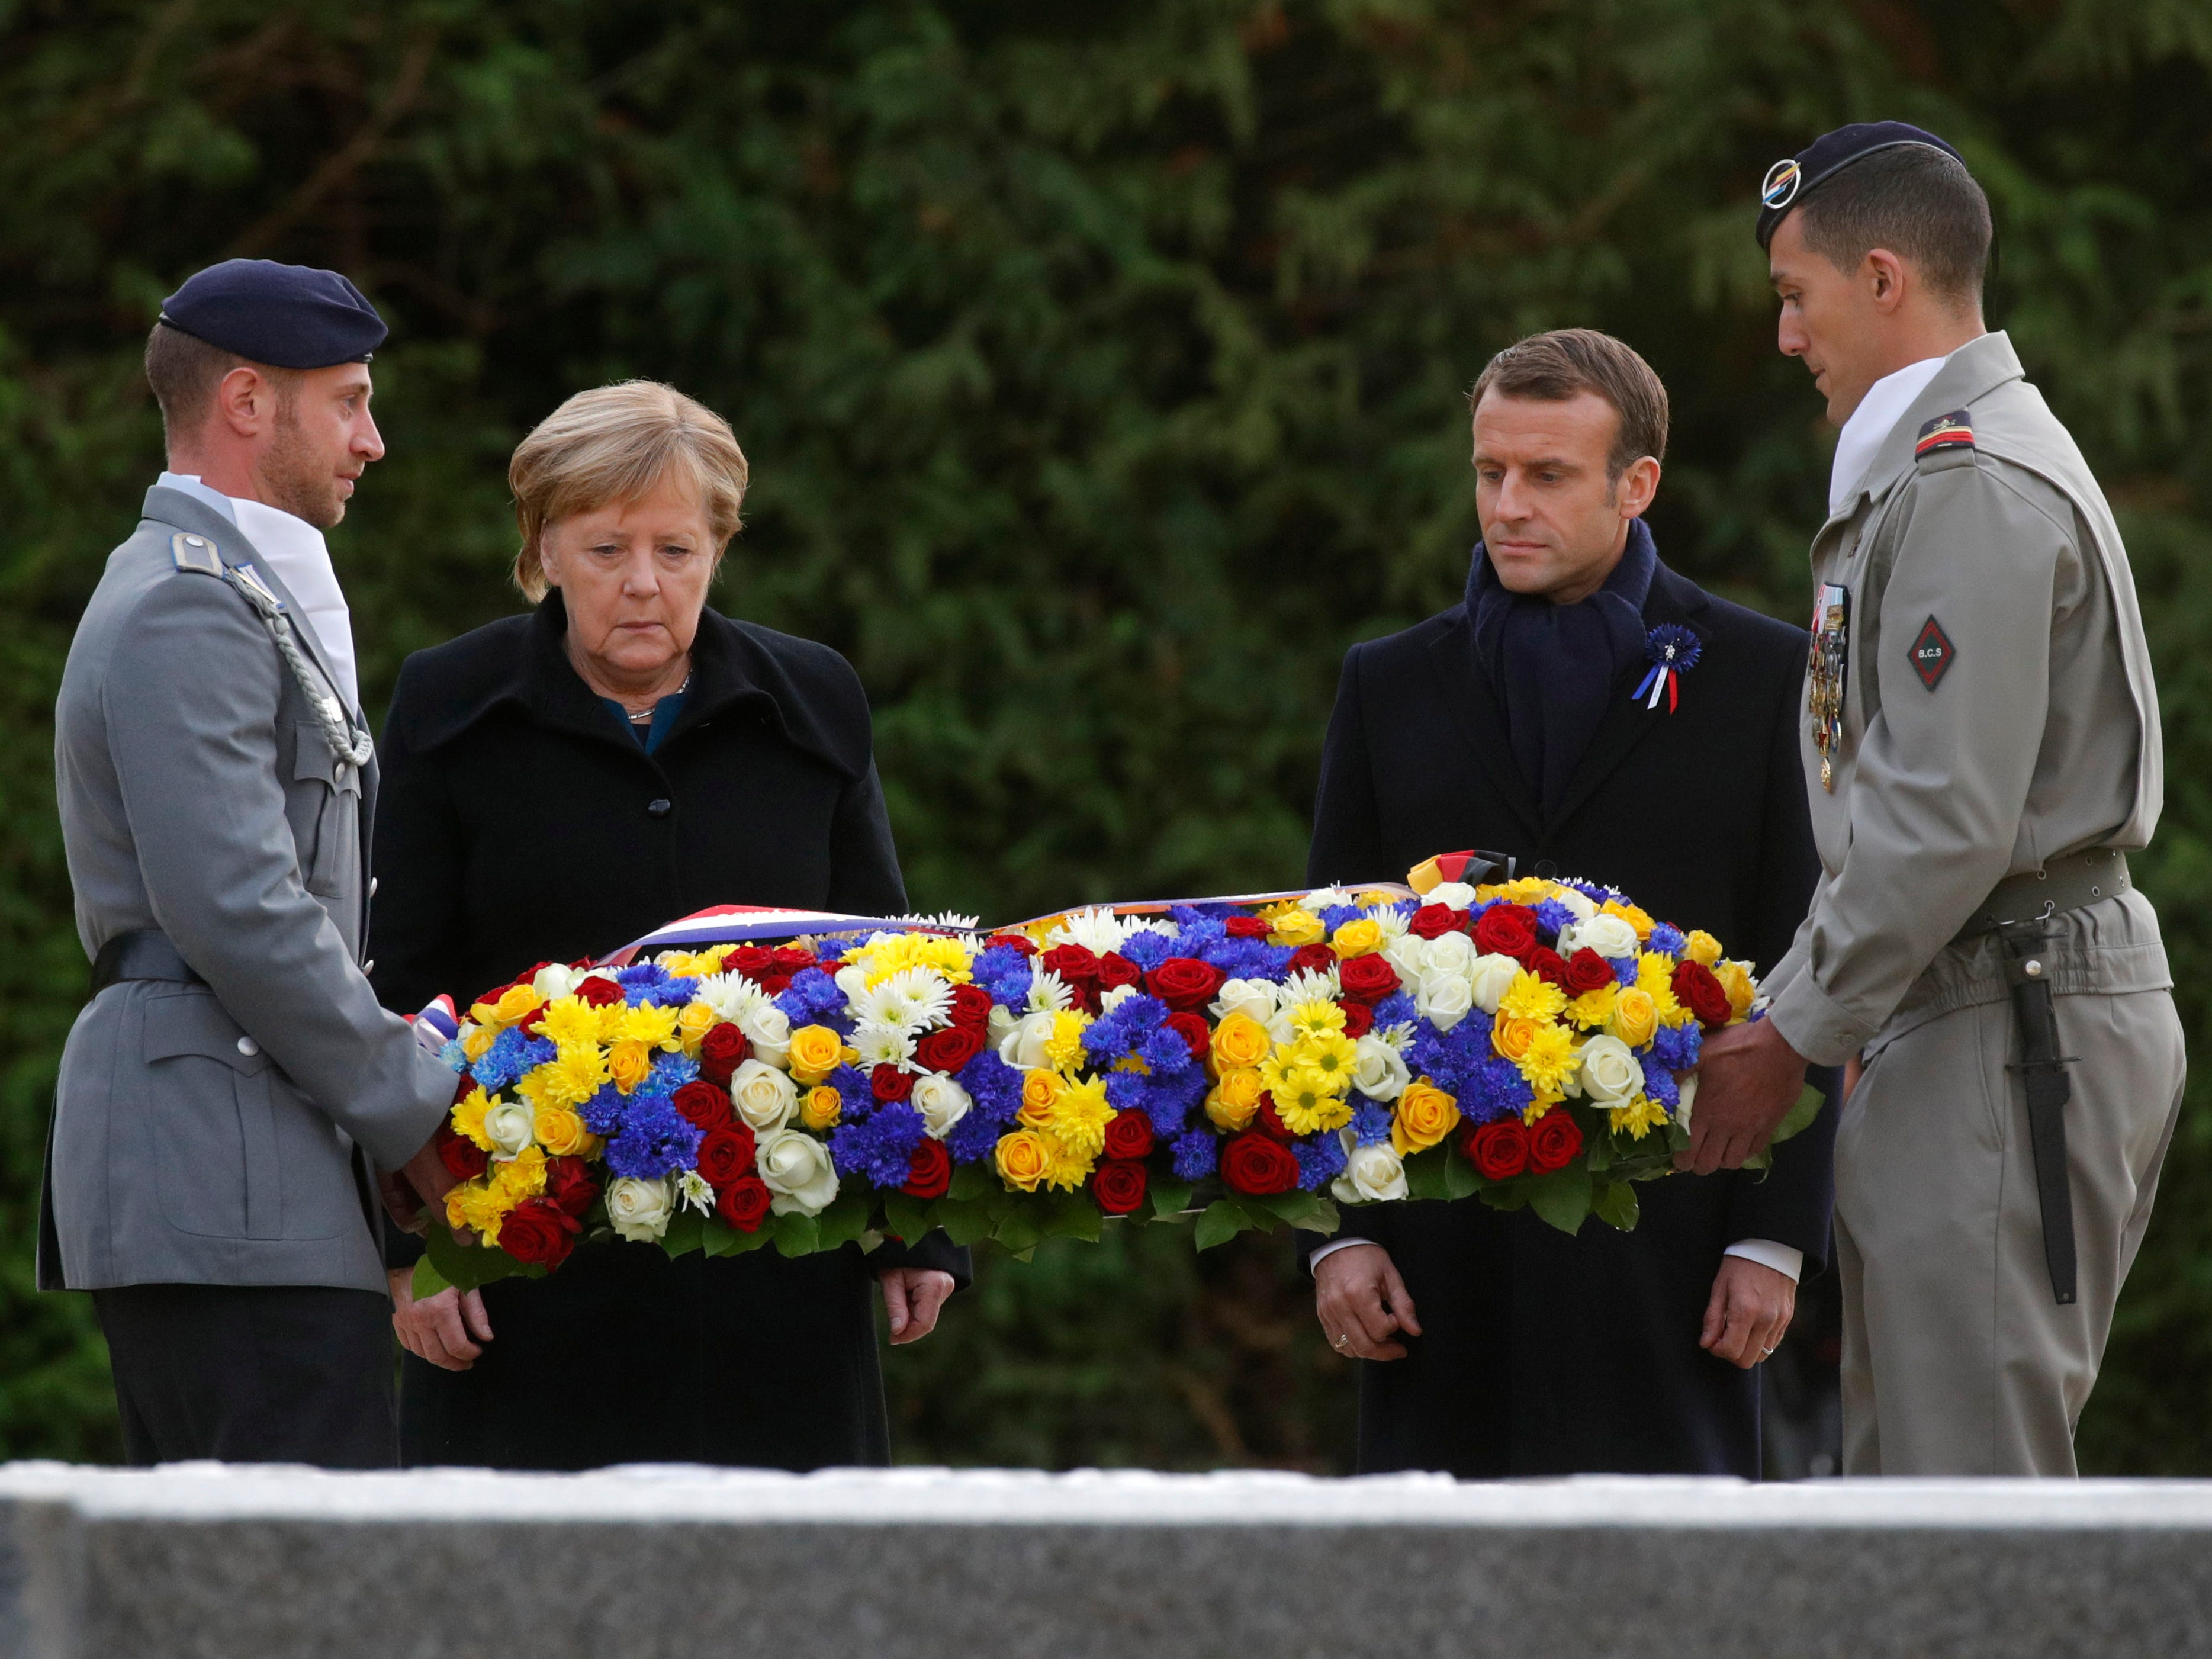 French President Emmanuel Macron and German Chancellor Angela Merkel lay a wreath in the Clairiere of Rethondes forest during a commemoration ceremony for Armistice Day, 100 years after the end of the First World War, in Compiegne, France on Nov. 10, 2018.